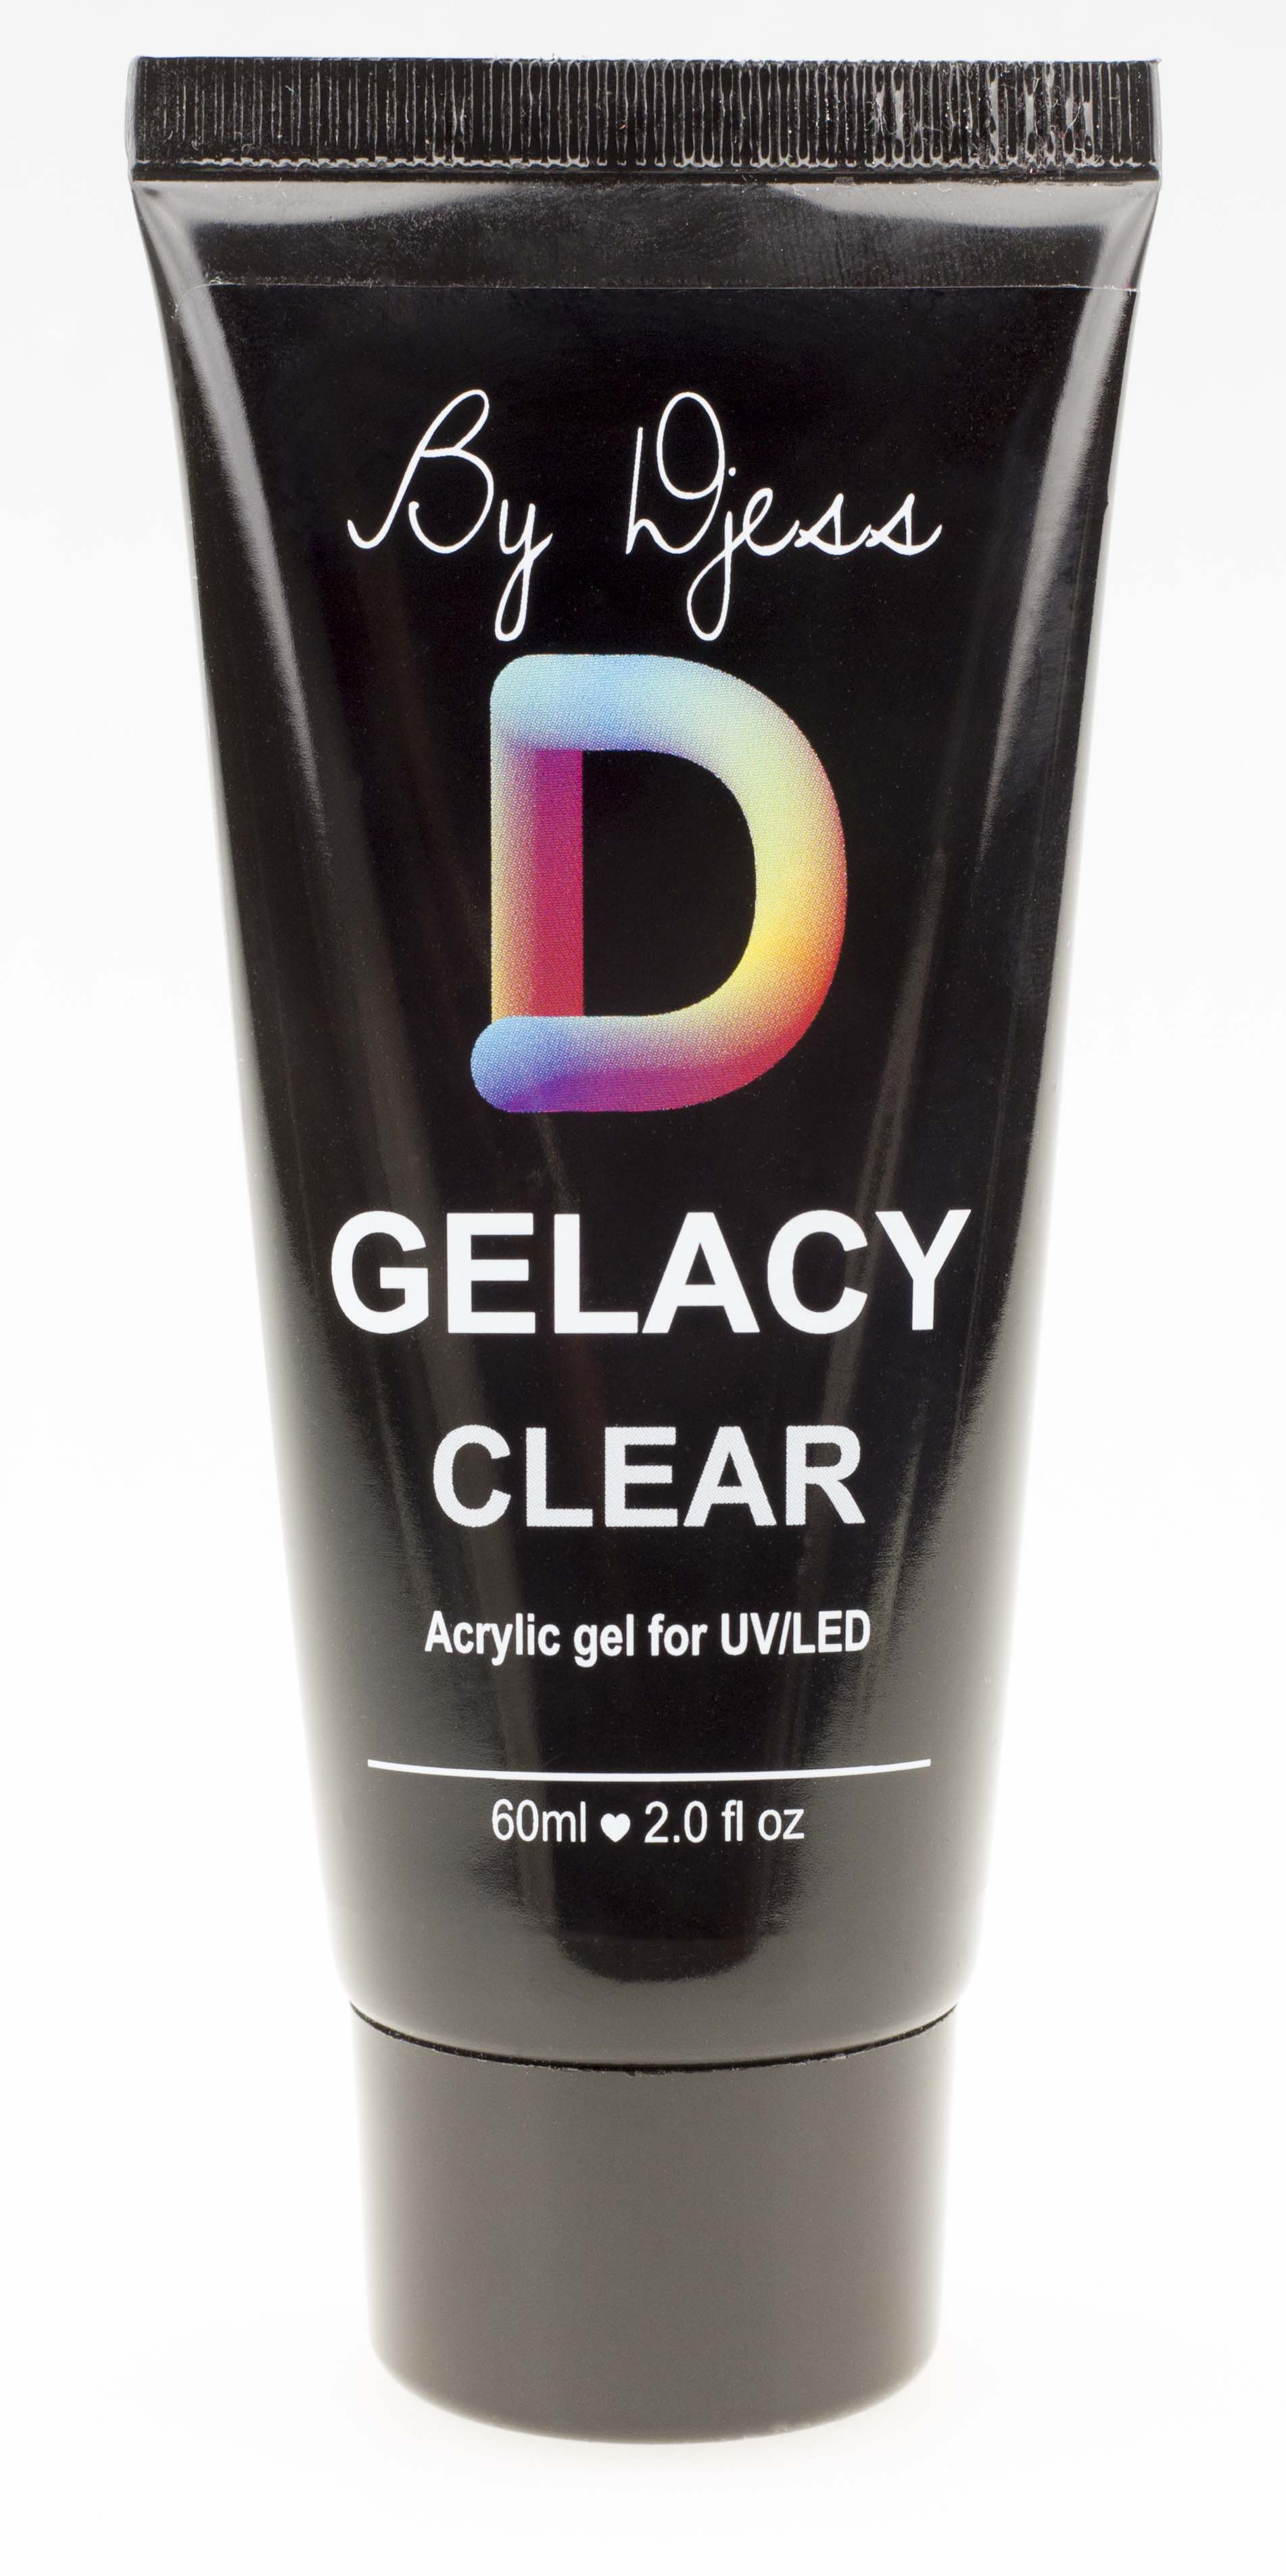 GELACY - Clear - Tube 60ml